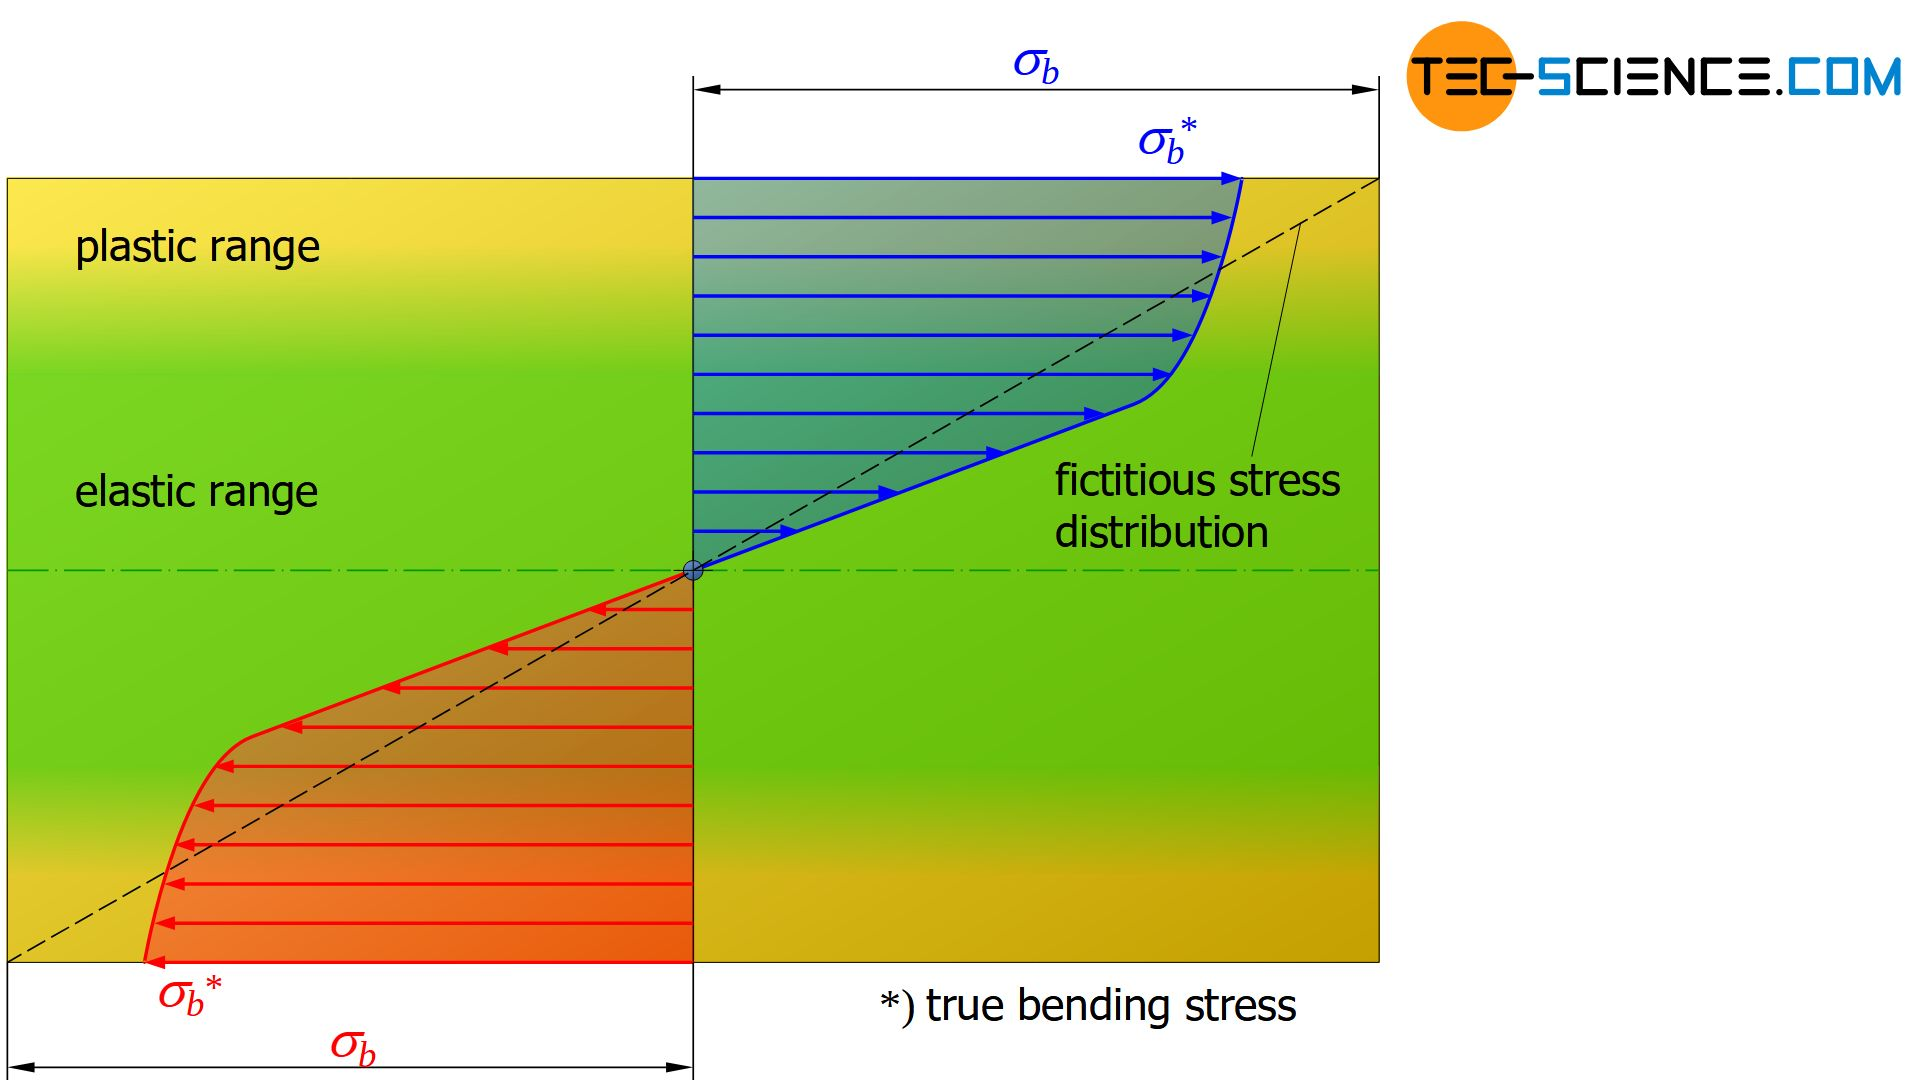 True and fictitious stress distribution in the plastic range